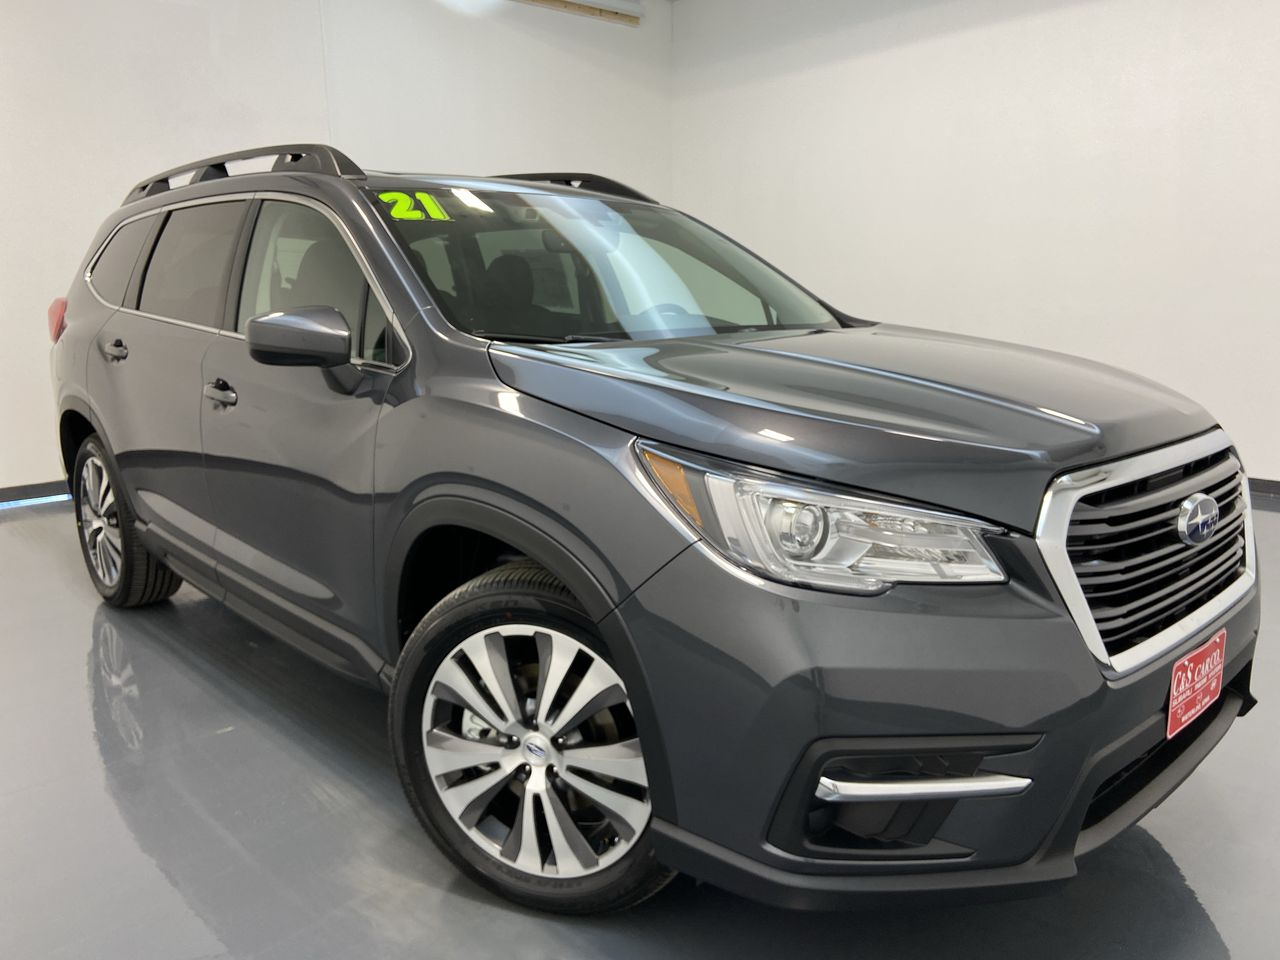 2021 Subaru ASCENT  - SC9068  - C & S Car Company